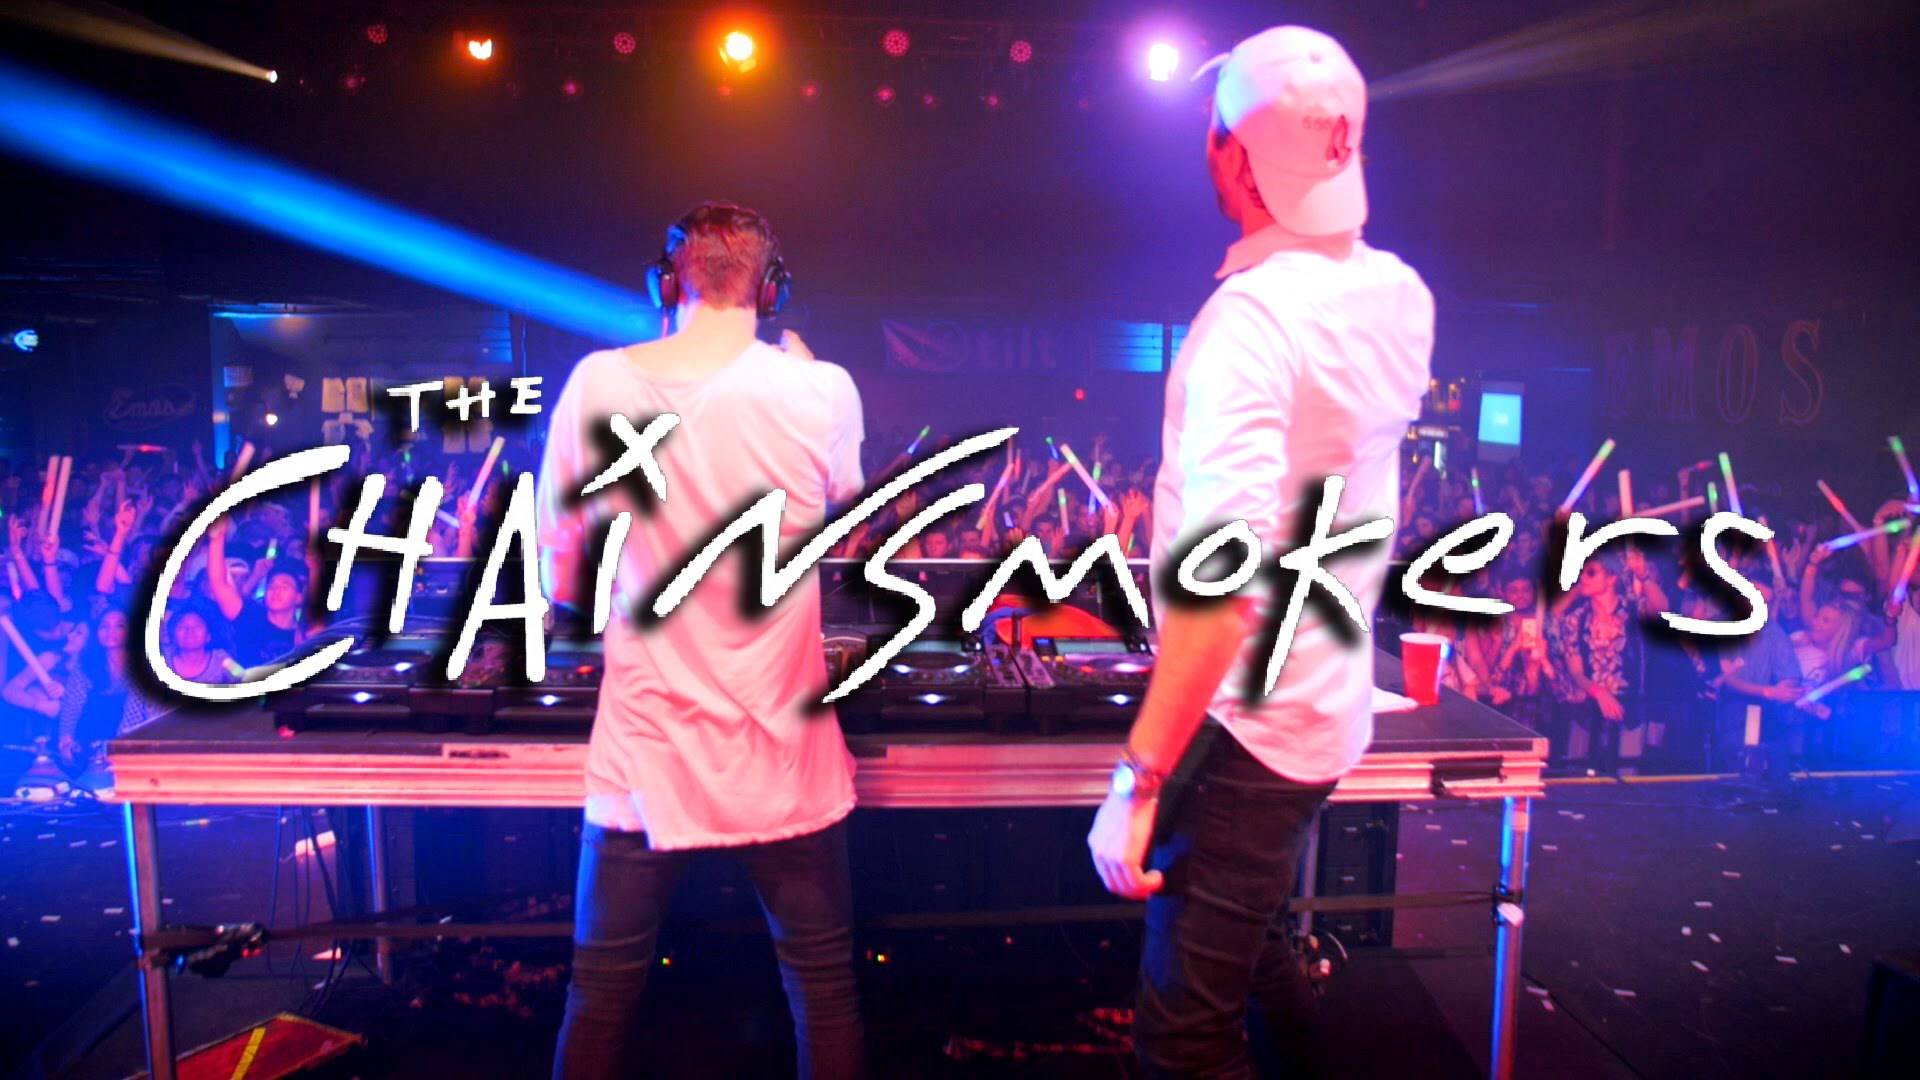 The Chainsmokers High Definition Wallpapers